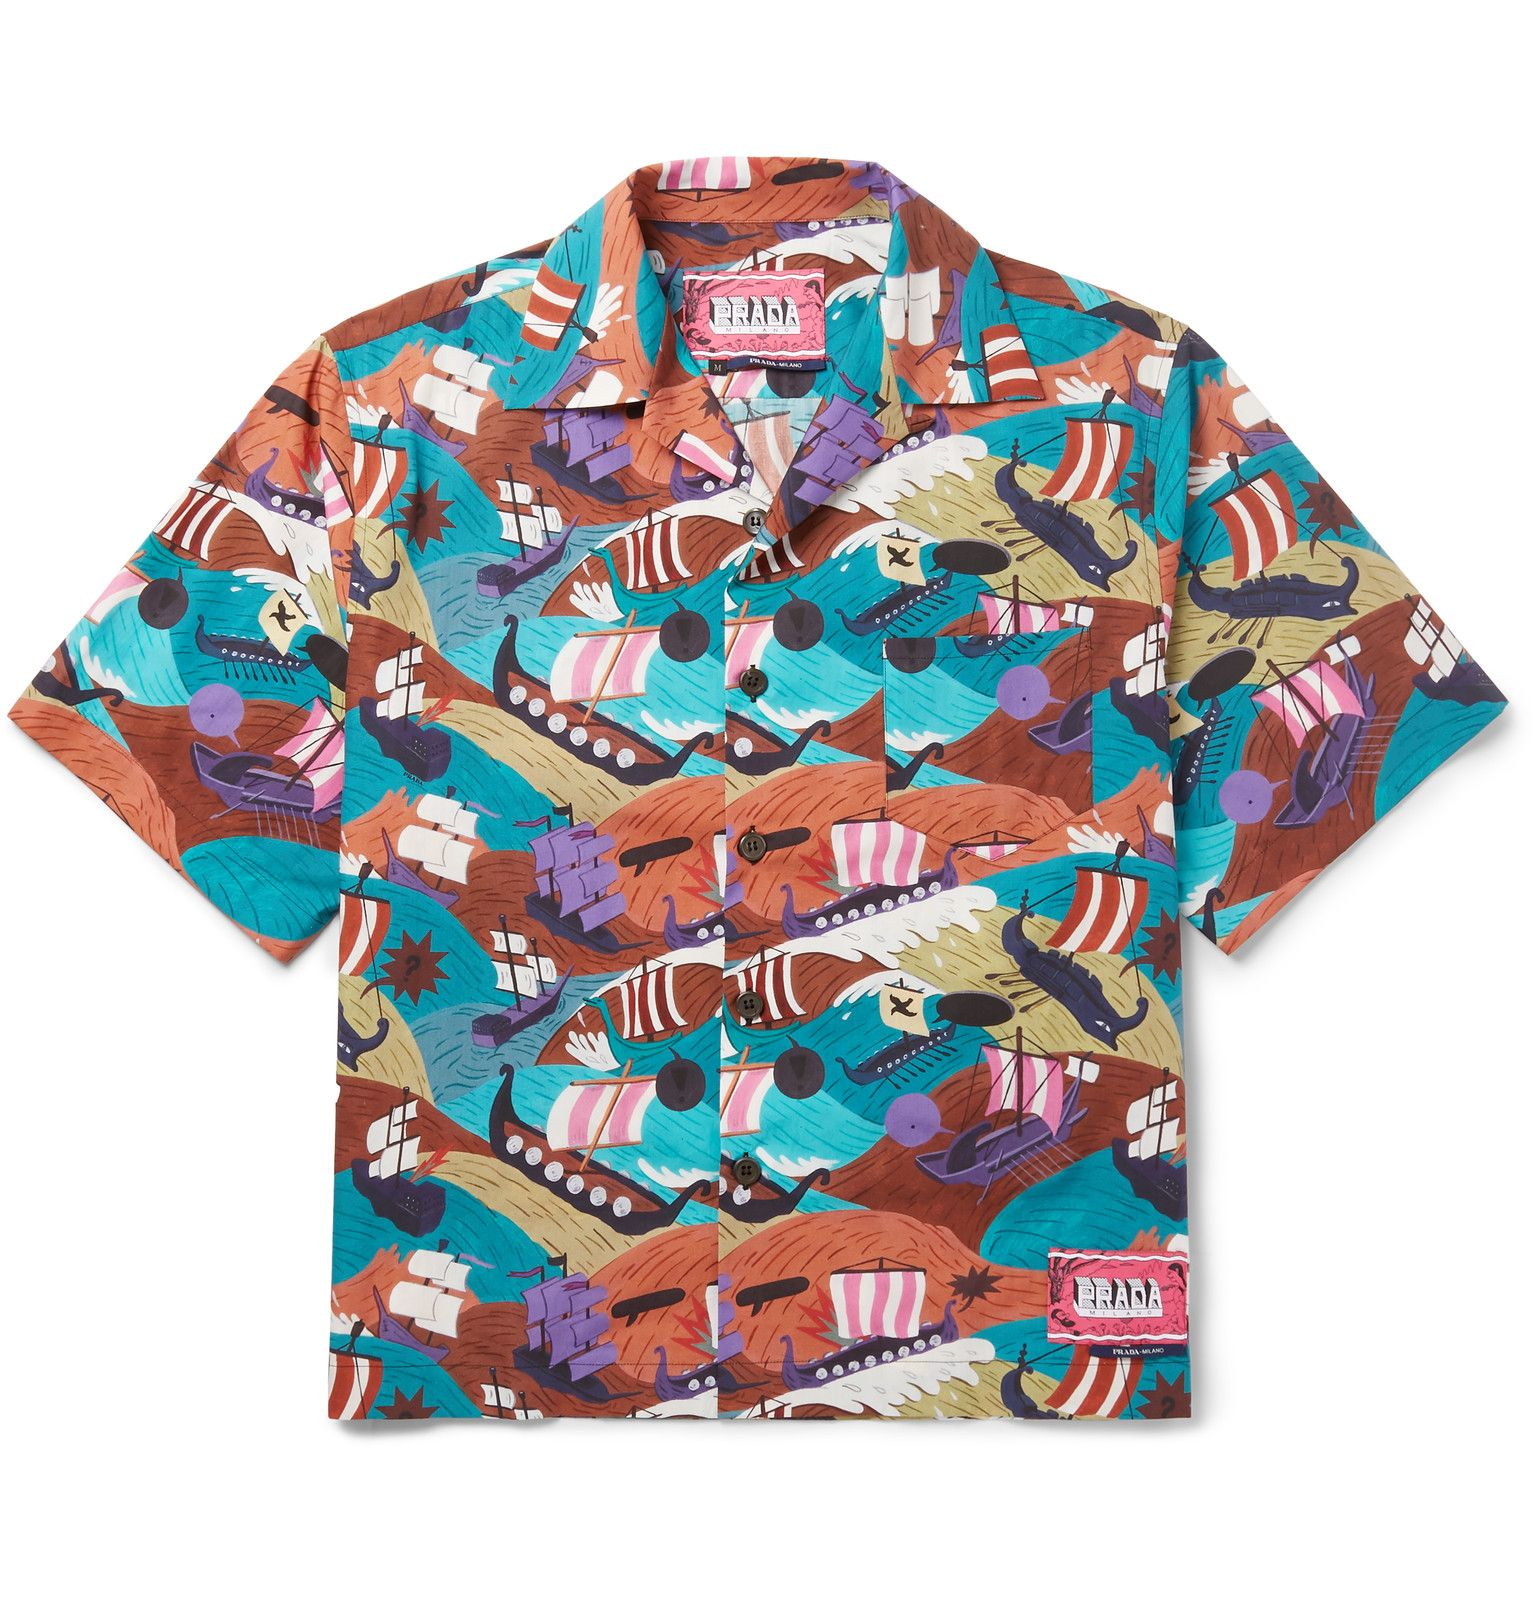 Camp-Collar Printed Cotton Shirt by Prada